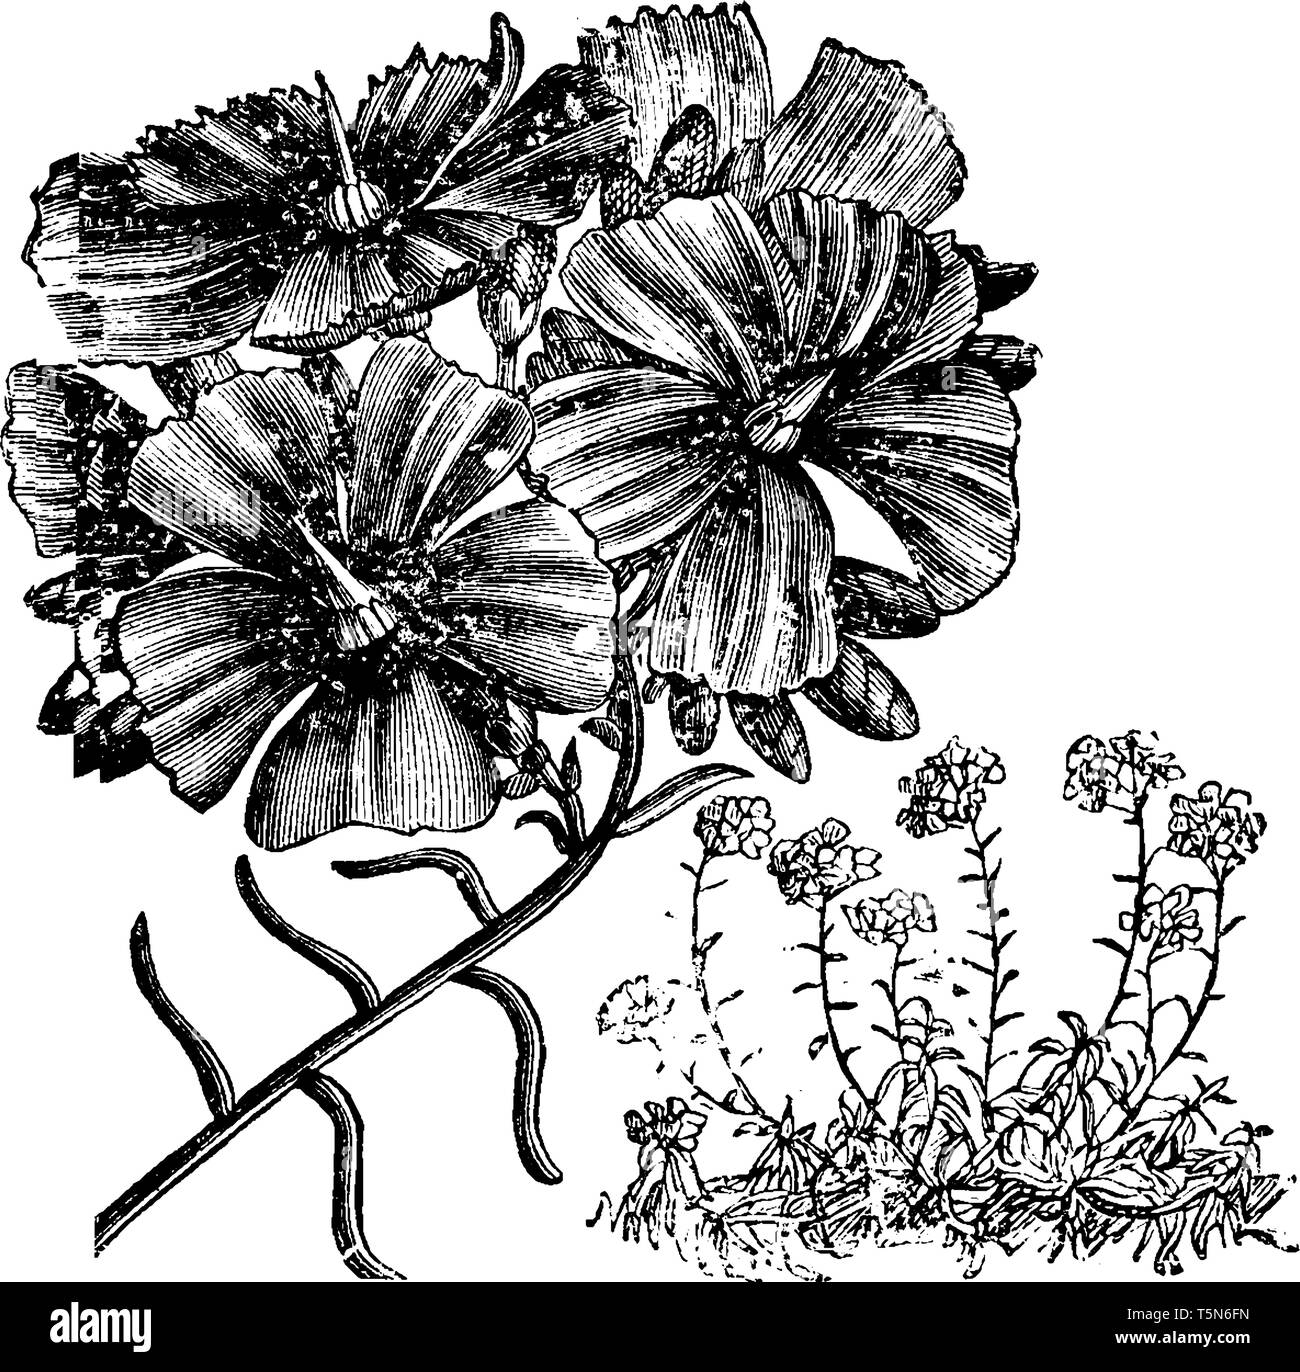 This is a flowering branch of Calandrinia Umbellata. Flowers have brilliant magenta-crimson color and bright green leaves, vintage line drawing or eng - Stock Image